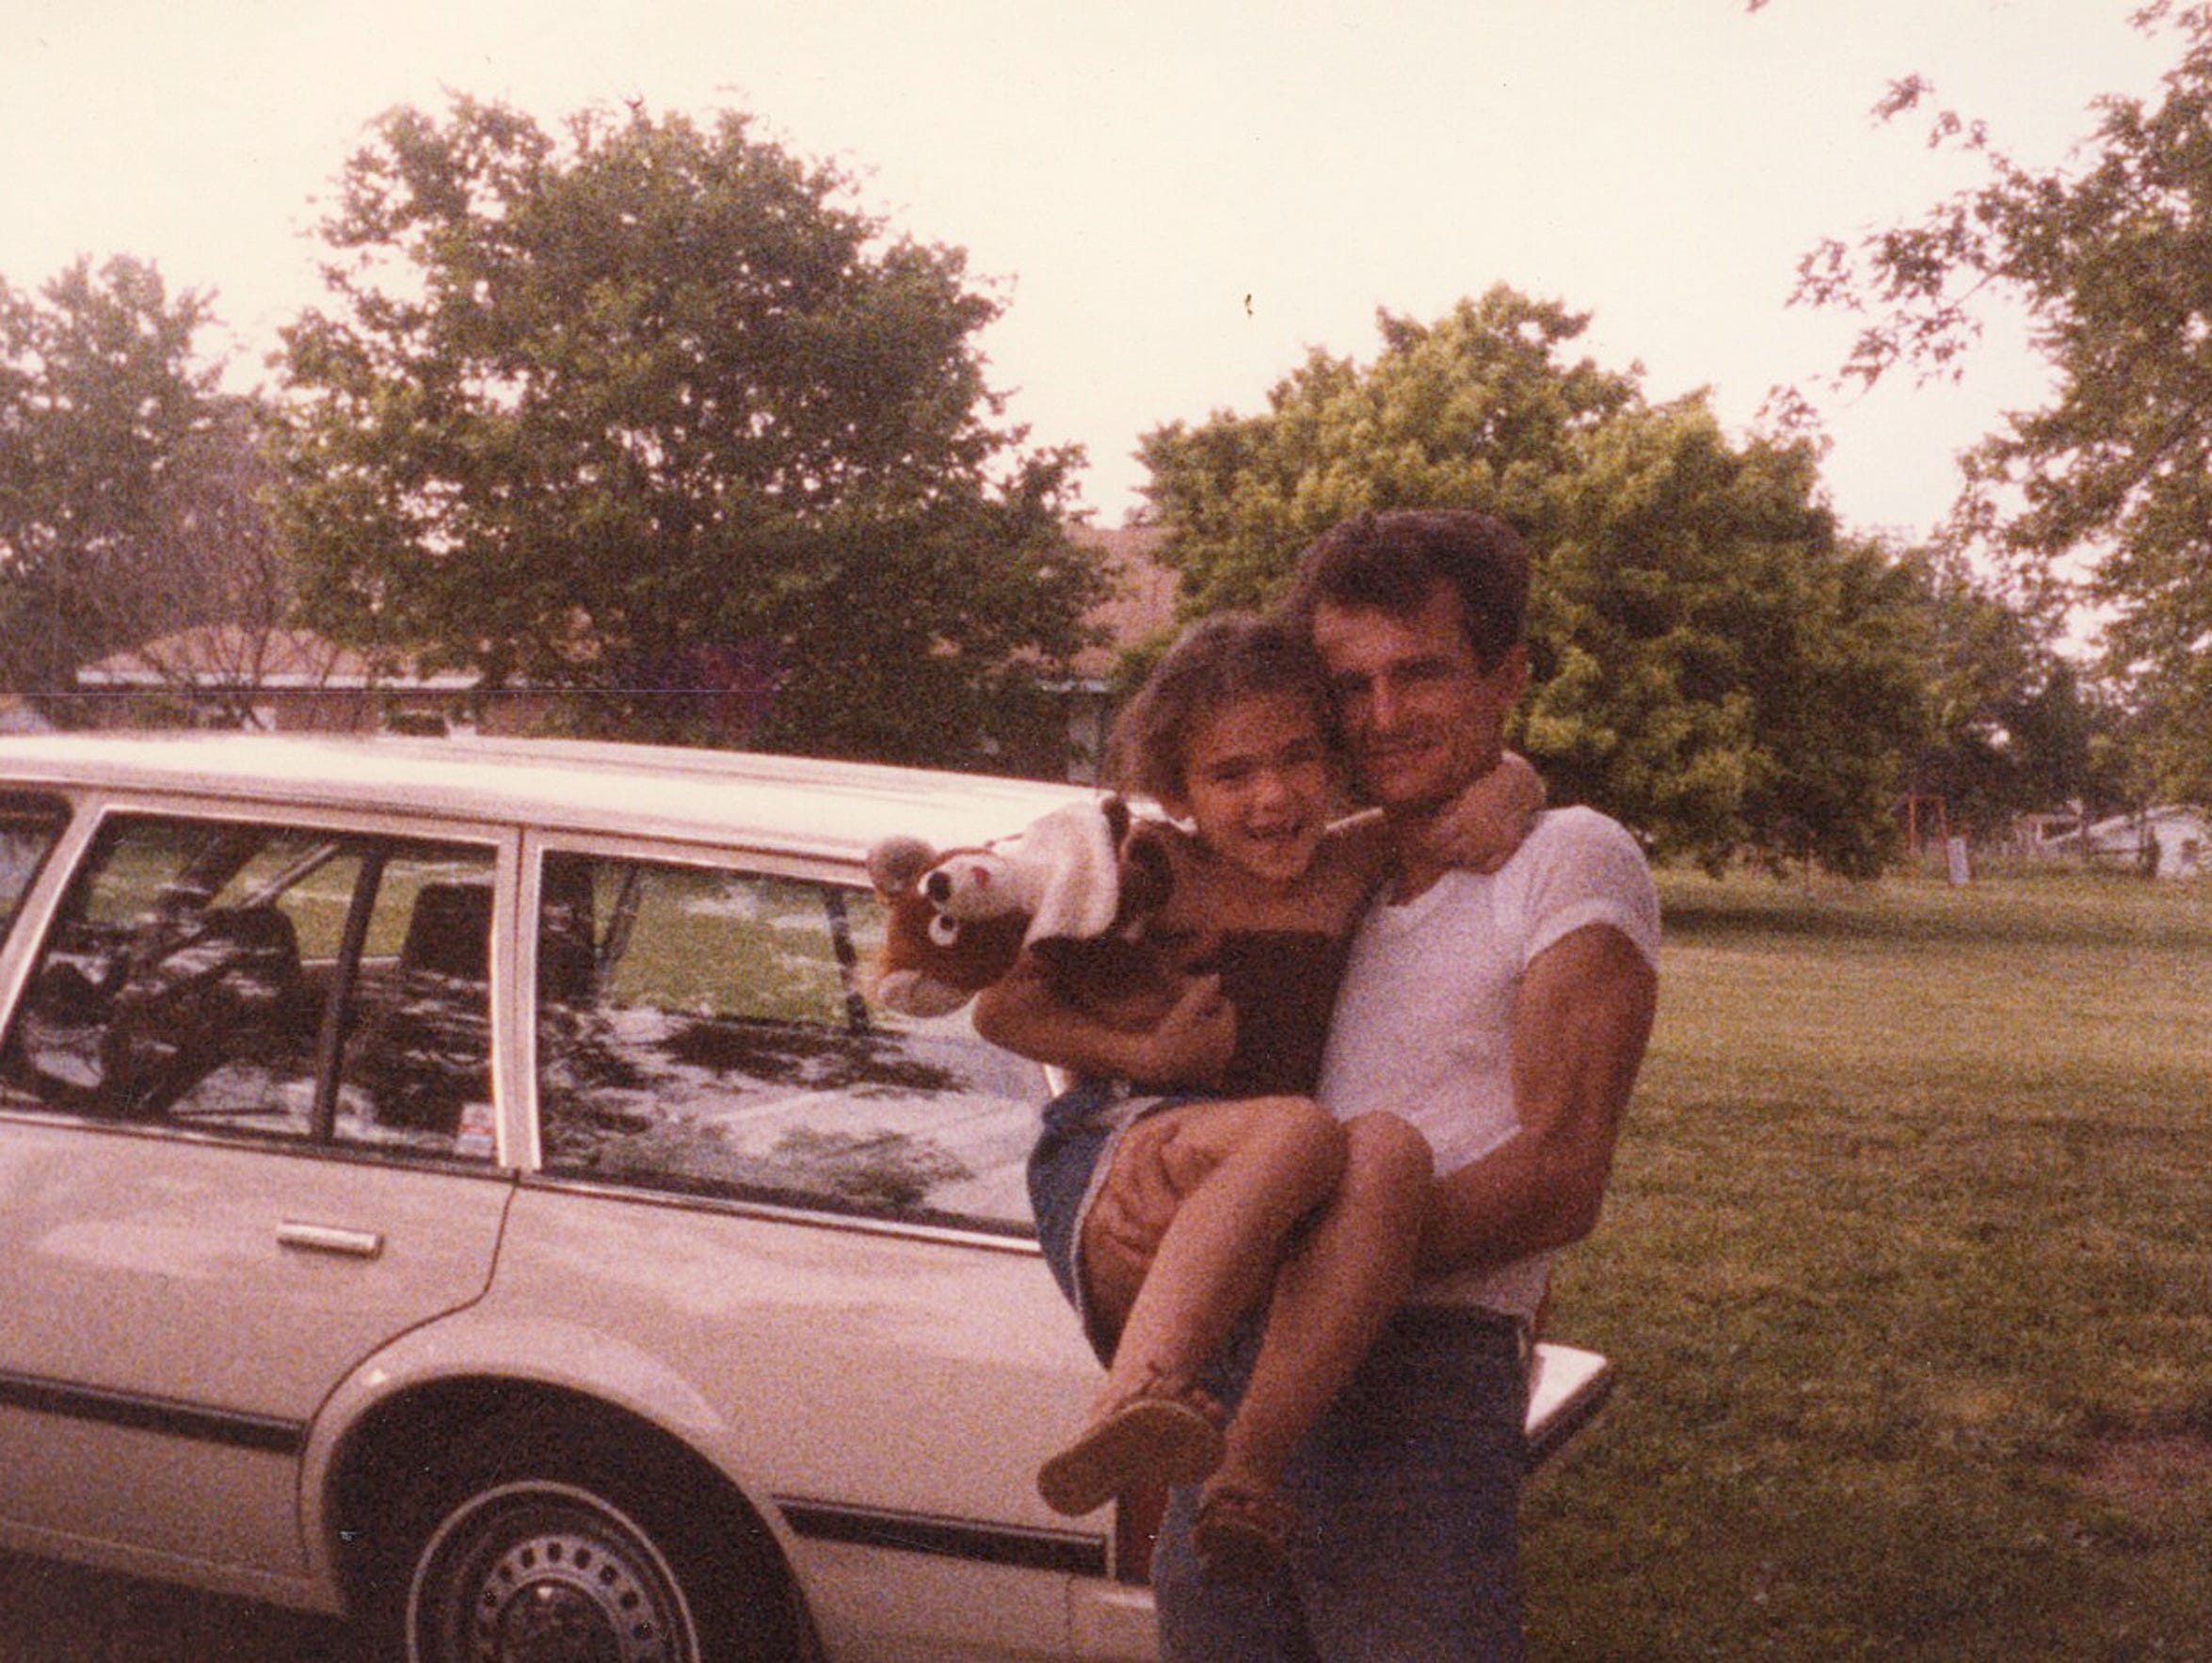 Bob Paillet holds his daughter Gena in the 1980s.